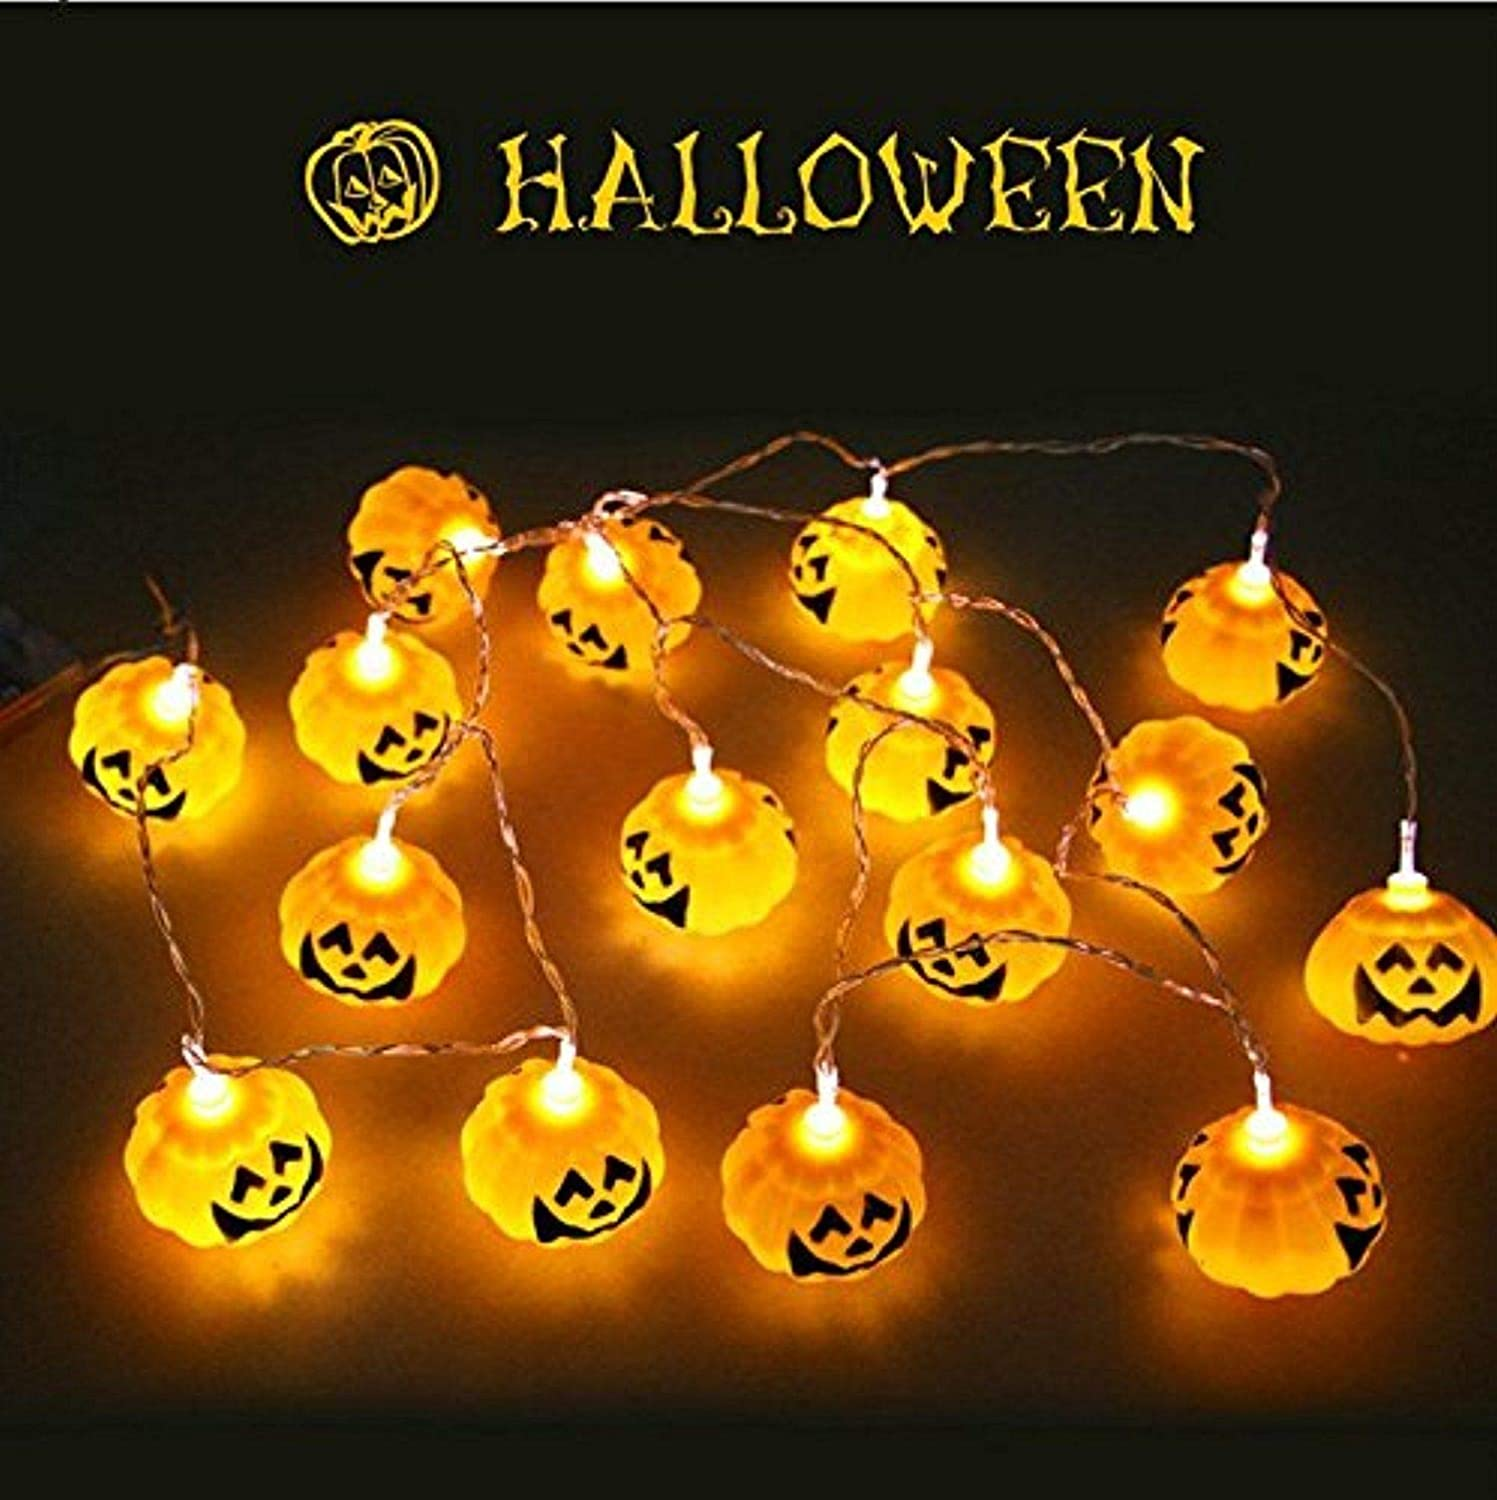 10 LED Hanging Halloween Decor Pumpkins Ghost Spider Skull LED String Lights Lanterns Lamp for DIY Home Outdoor Party Supplies by Thirsty Jini